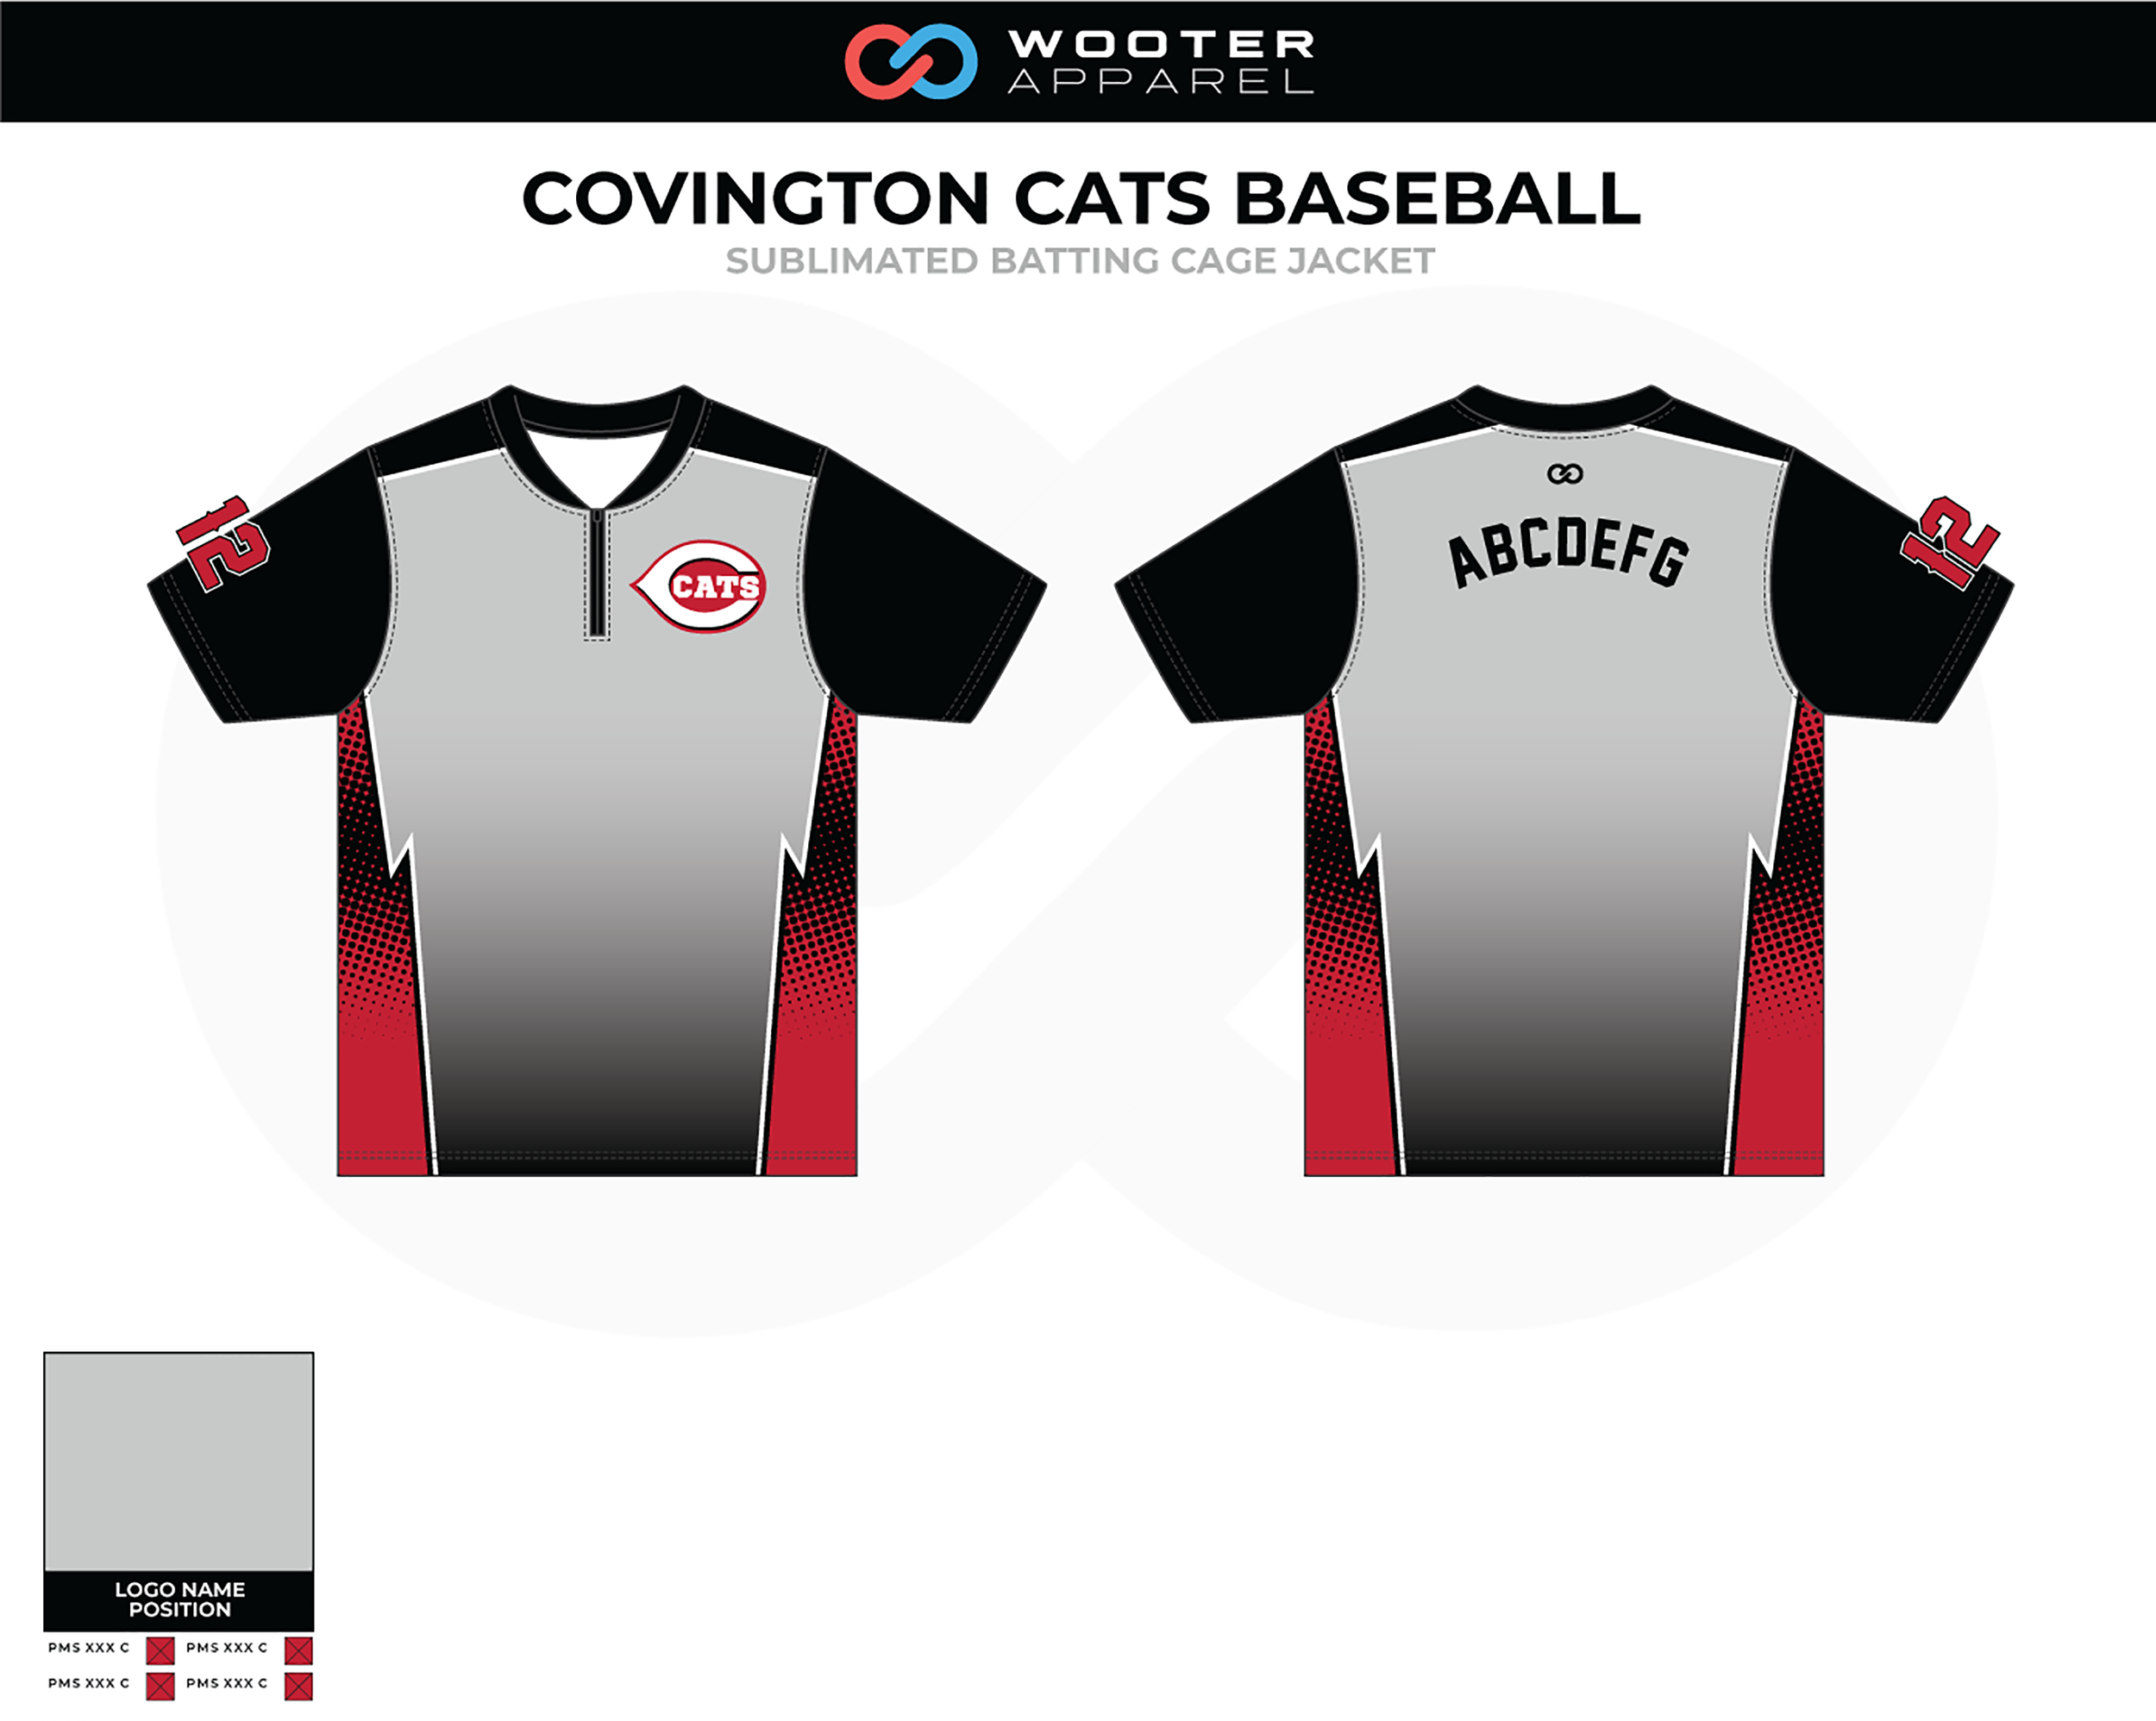 CovingtonCatsBaseball_BattingJacketMockupV2.png